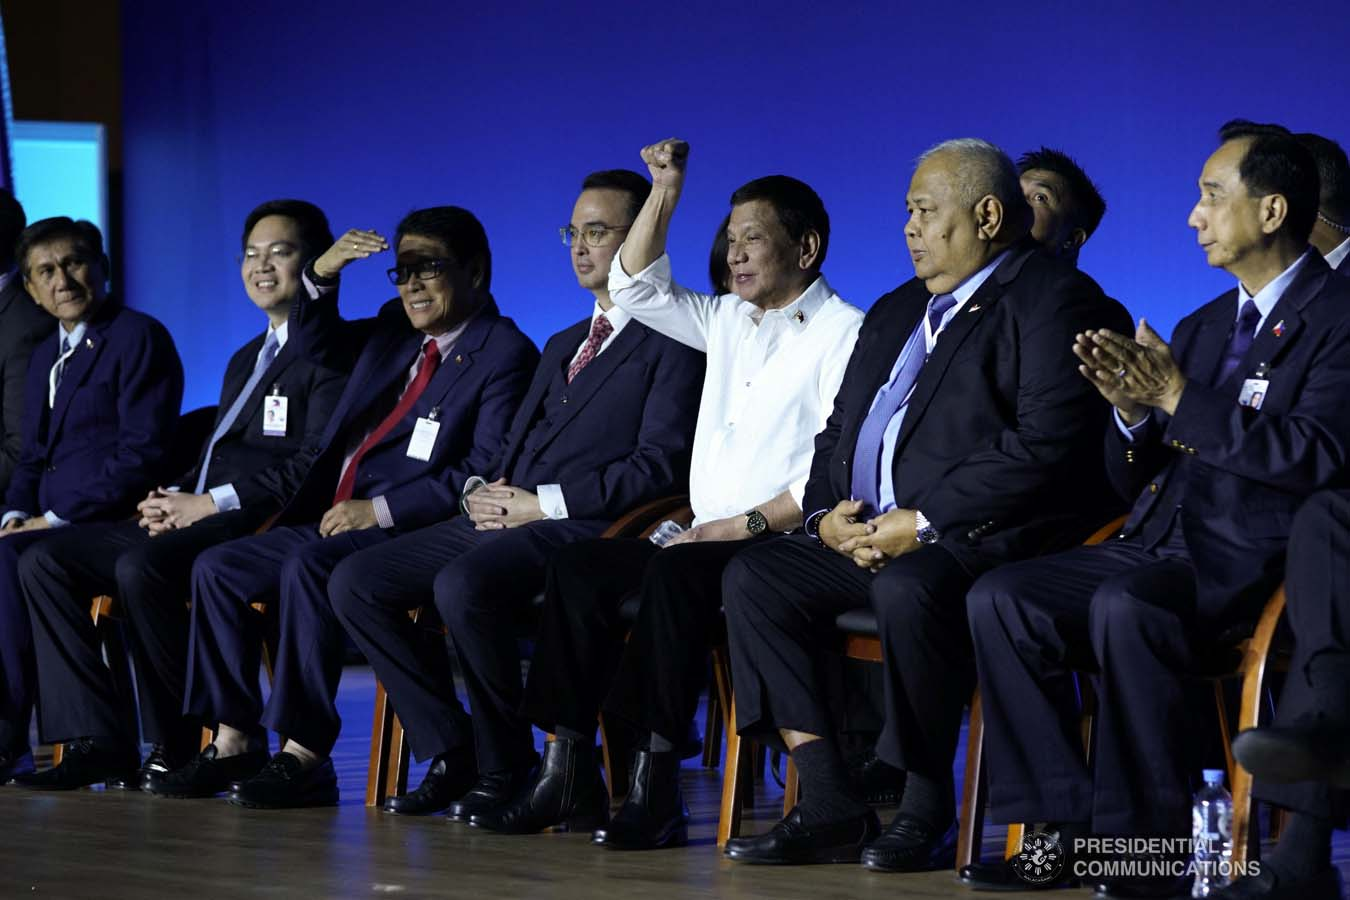 President Rodrigo Roa Duterte raises his fist before the Filipinos based in Russia who met with the President at the Exhibition of Achievements of National Economy (VDNH) in Moscow on October 5, 2019. JOEY DALUMPINES/PRESIDENTIAL PHOTO